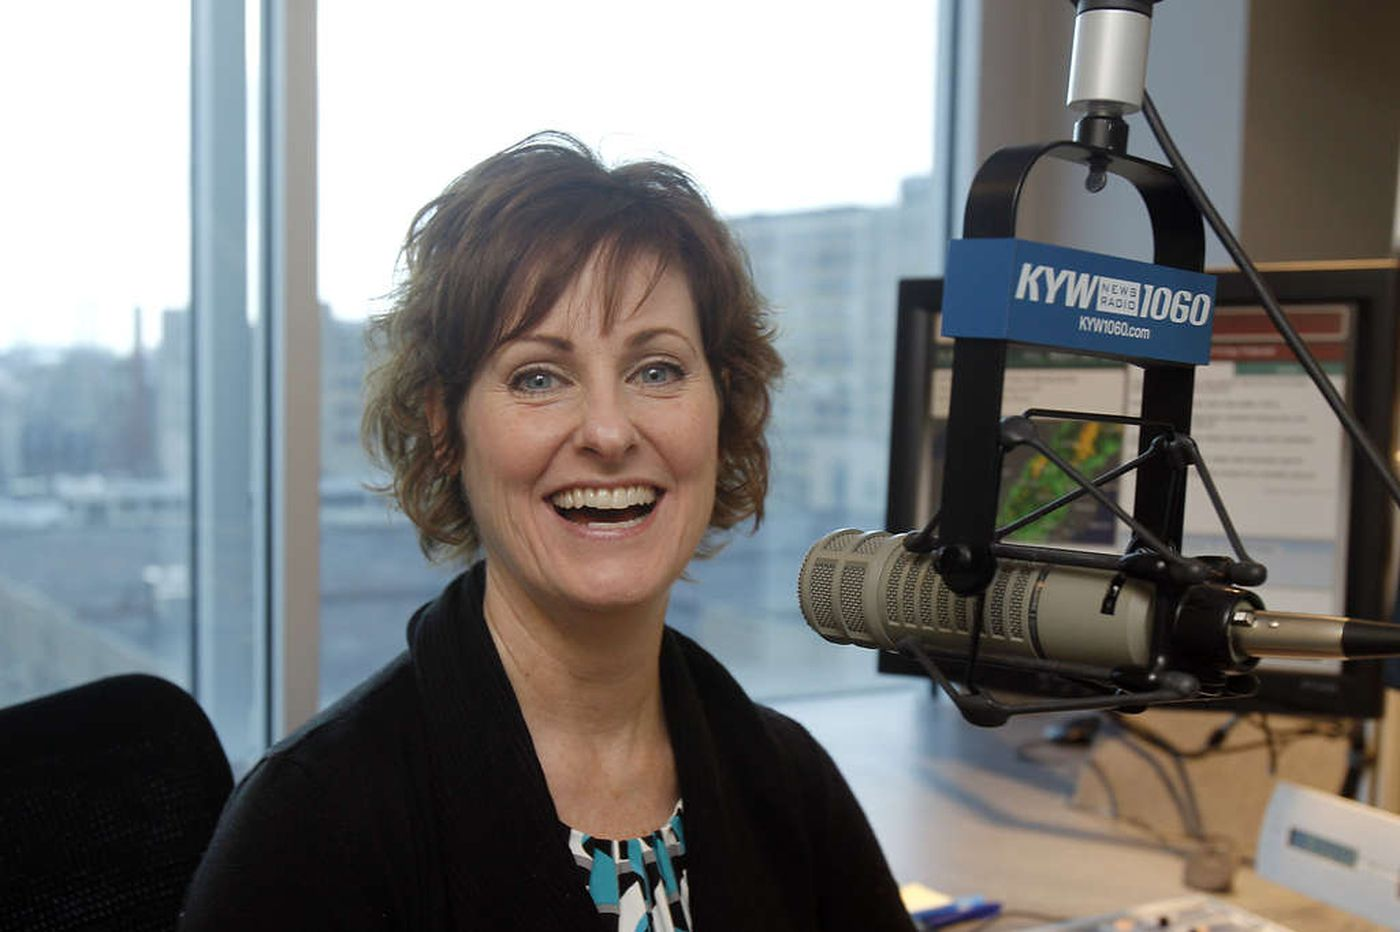 First they ditch the clack. Now they're going FM. What's next for venerable KYW Newsradio?